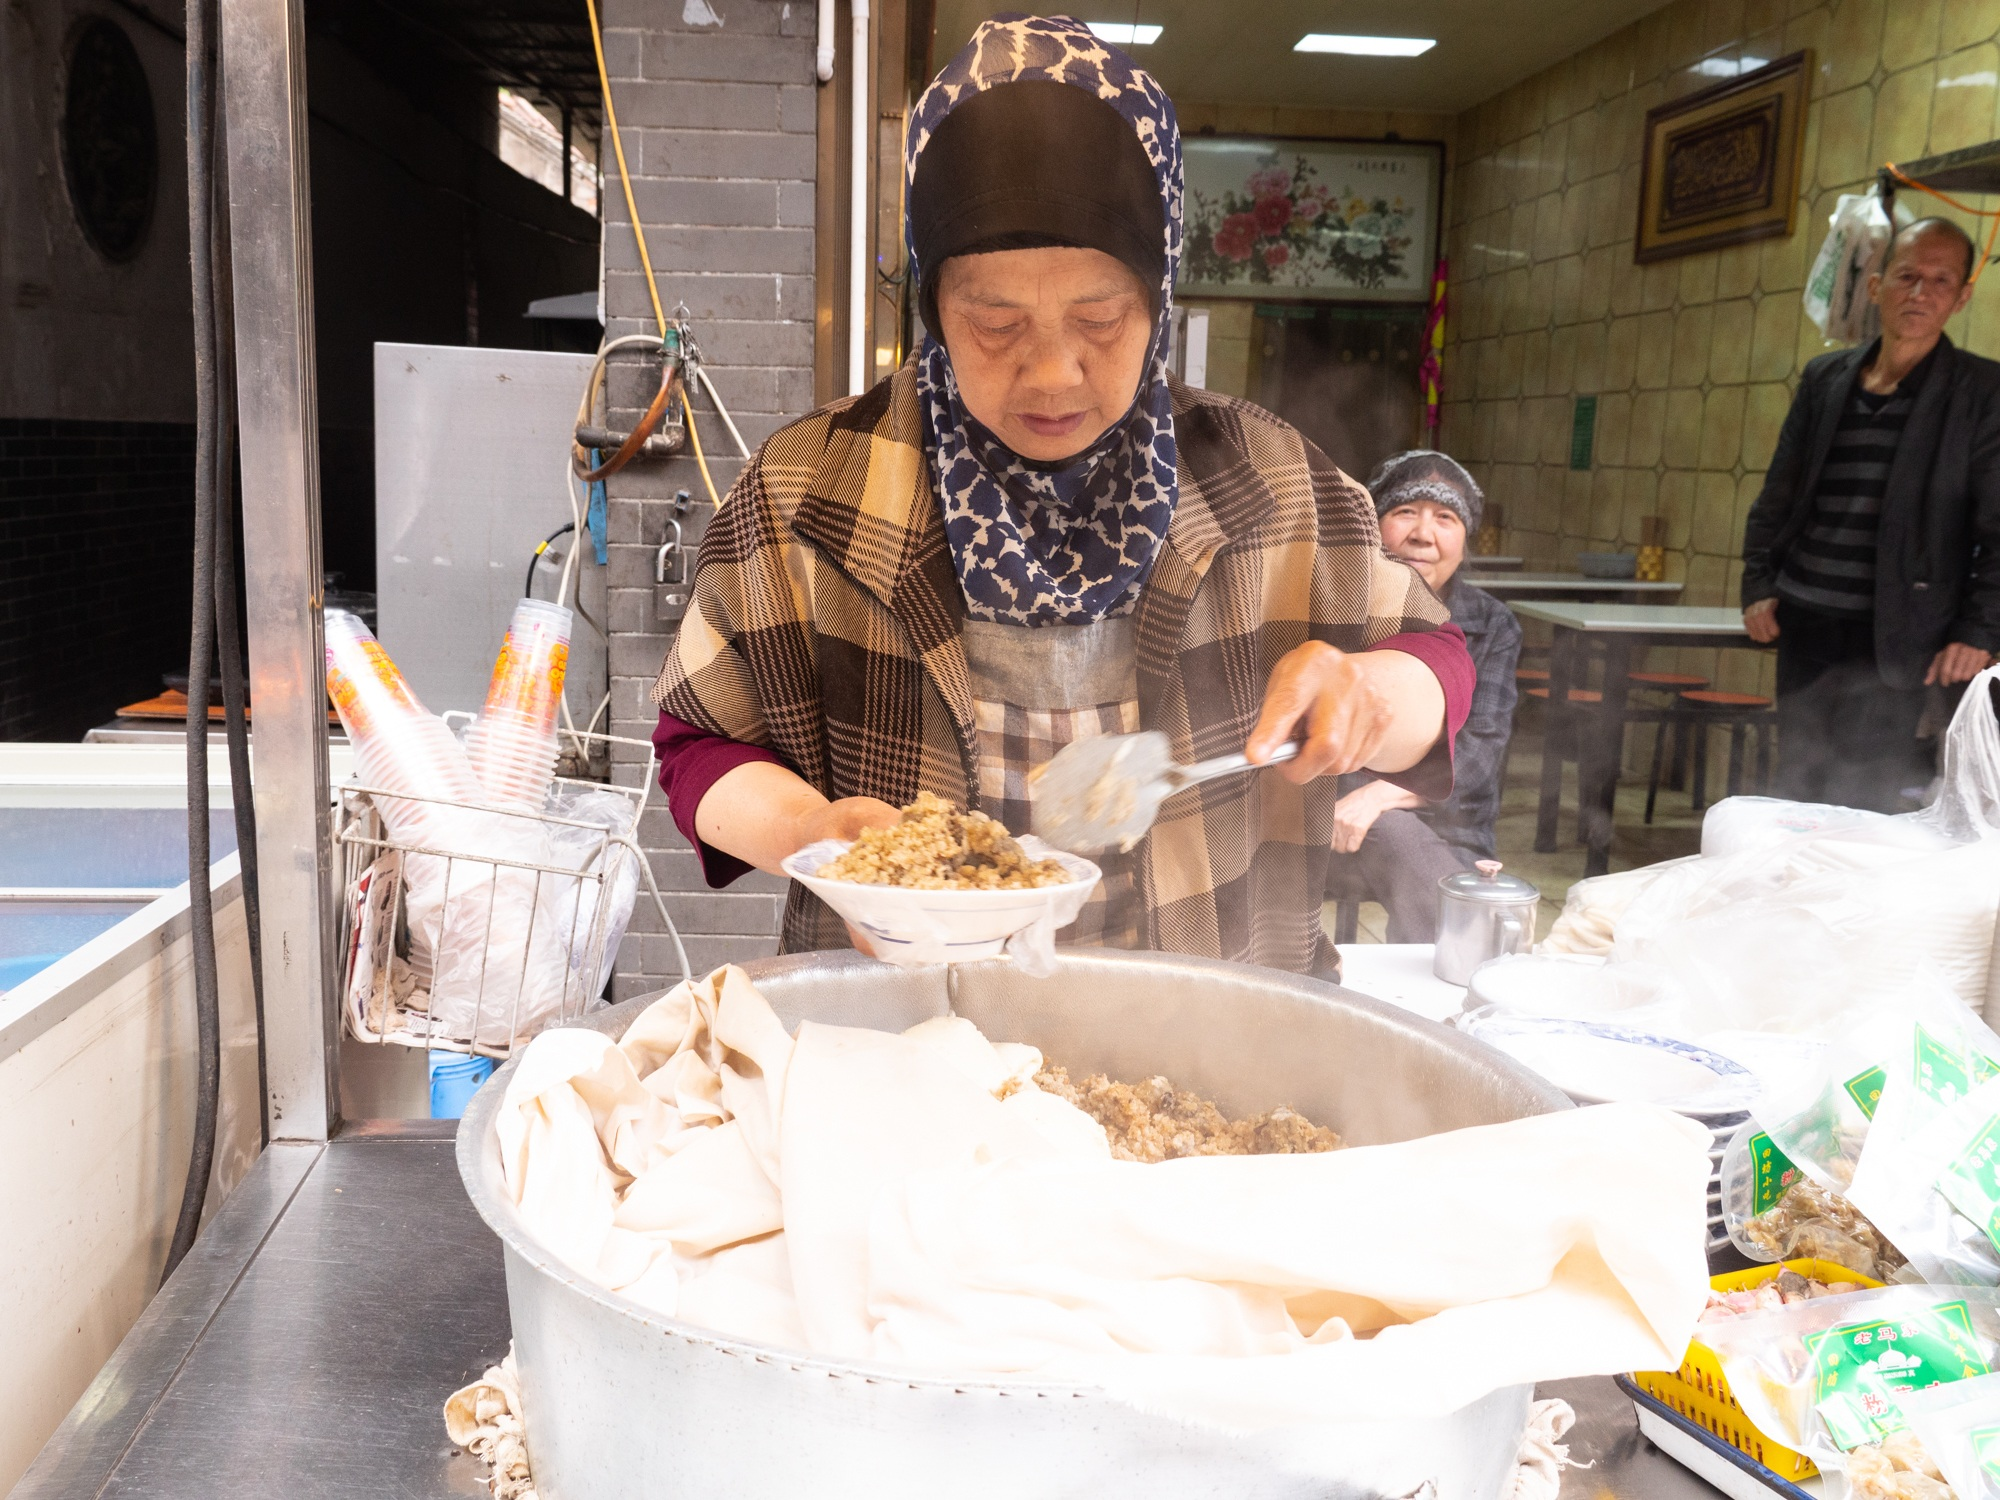 Great street food fenzhengrou in Xi'an